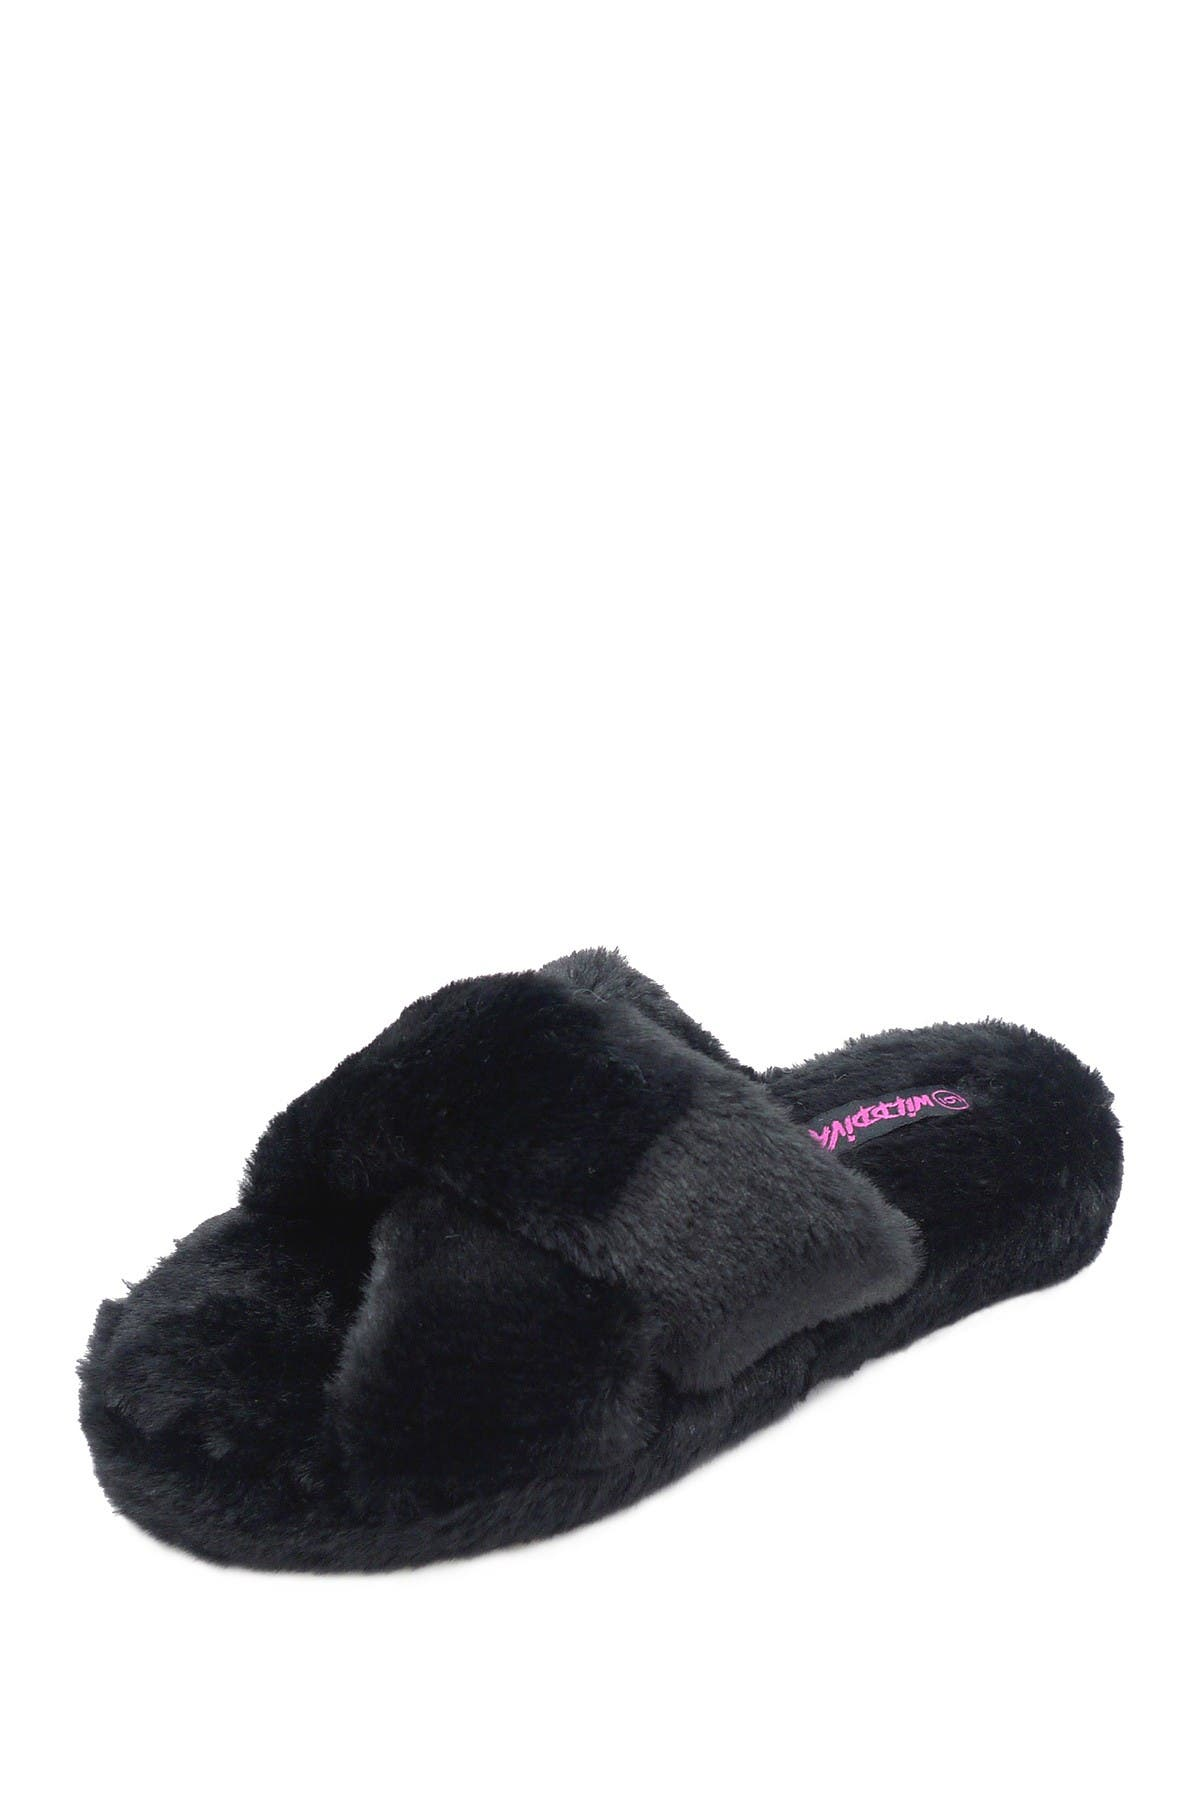 Image of Wild Diva Lounge Cuddles Plush Faux Fur Slipper